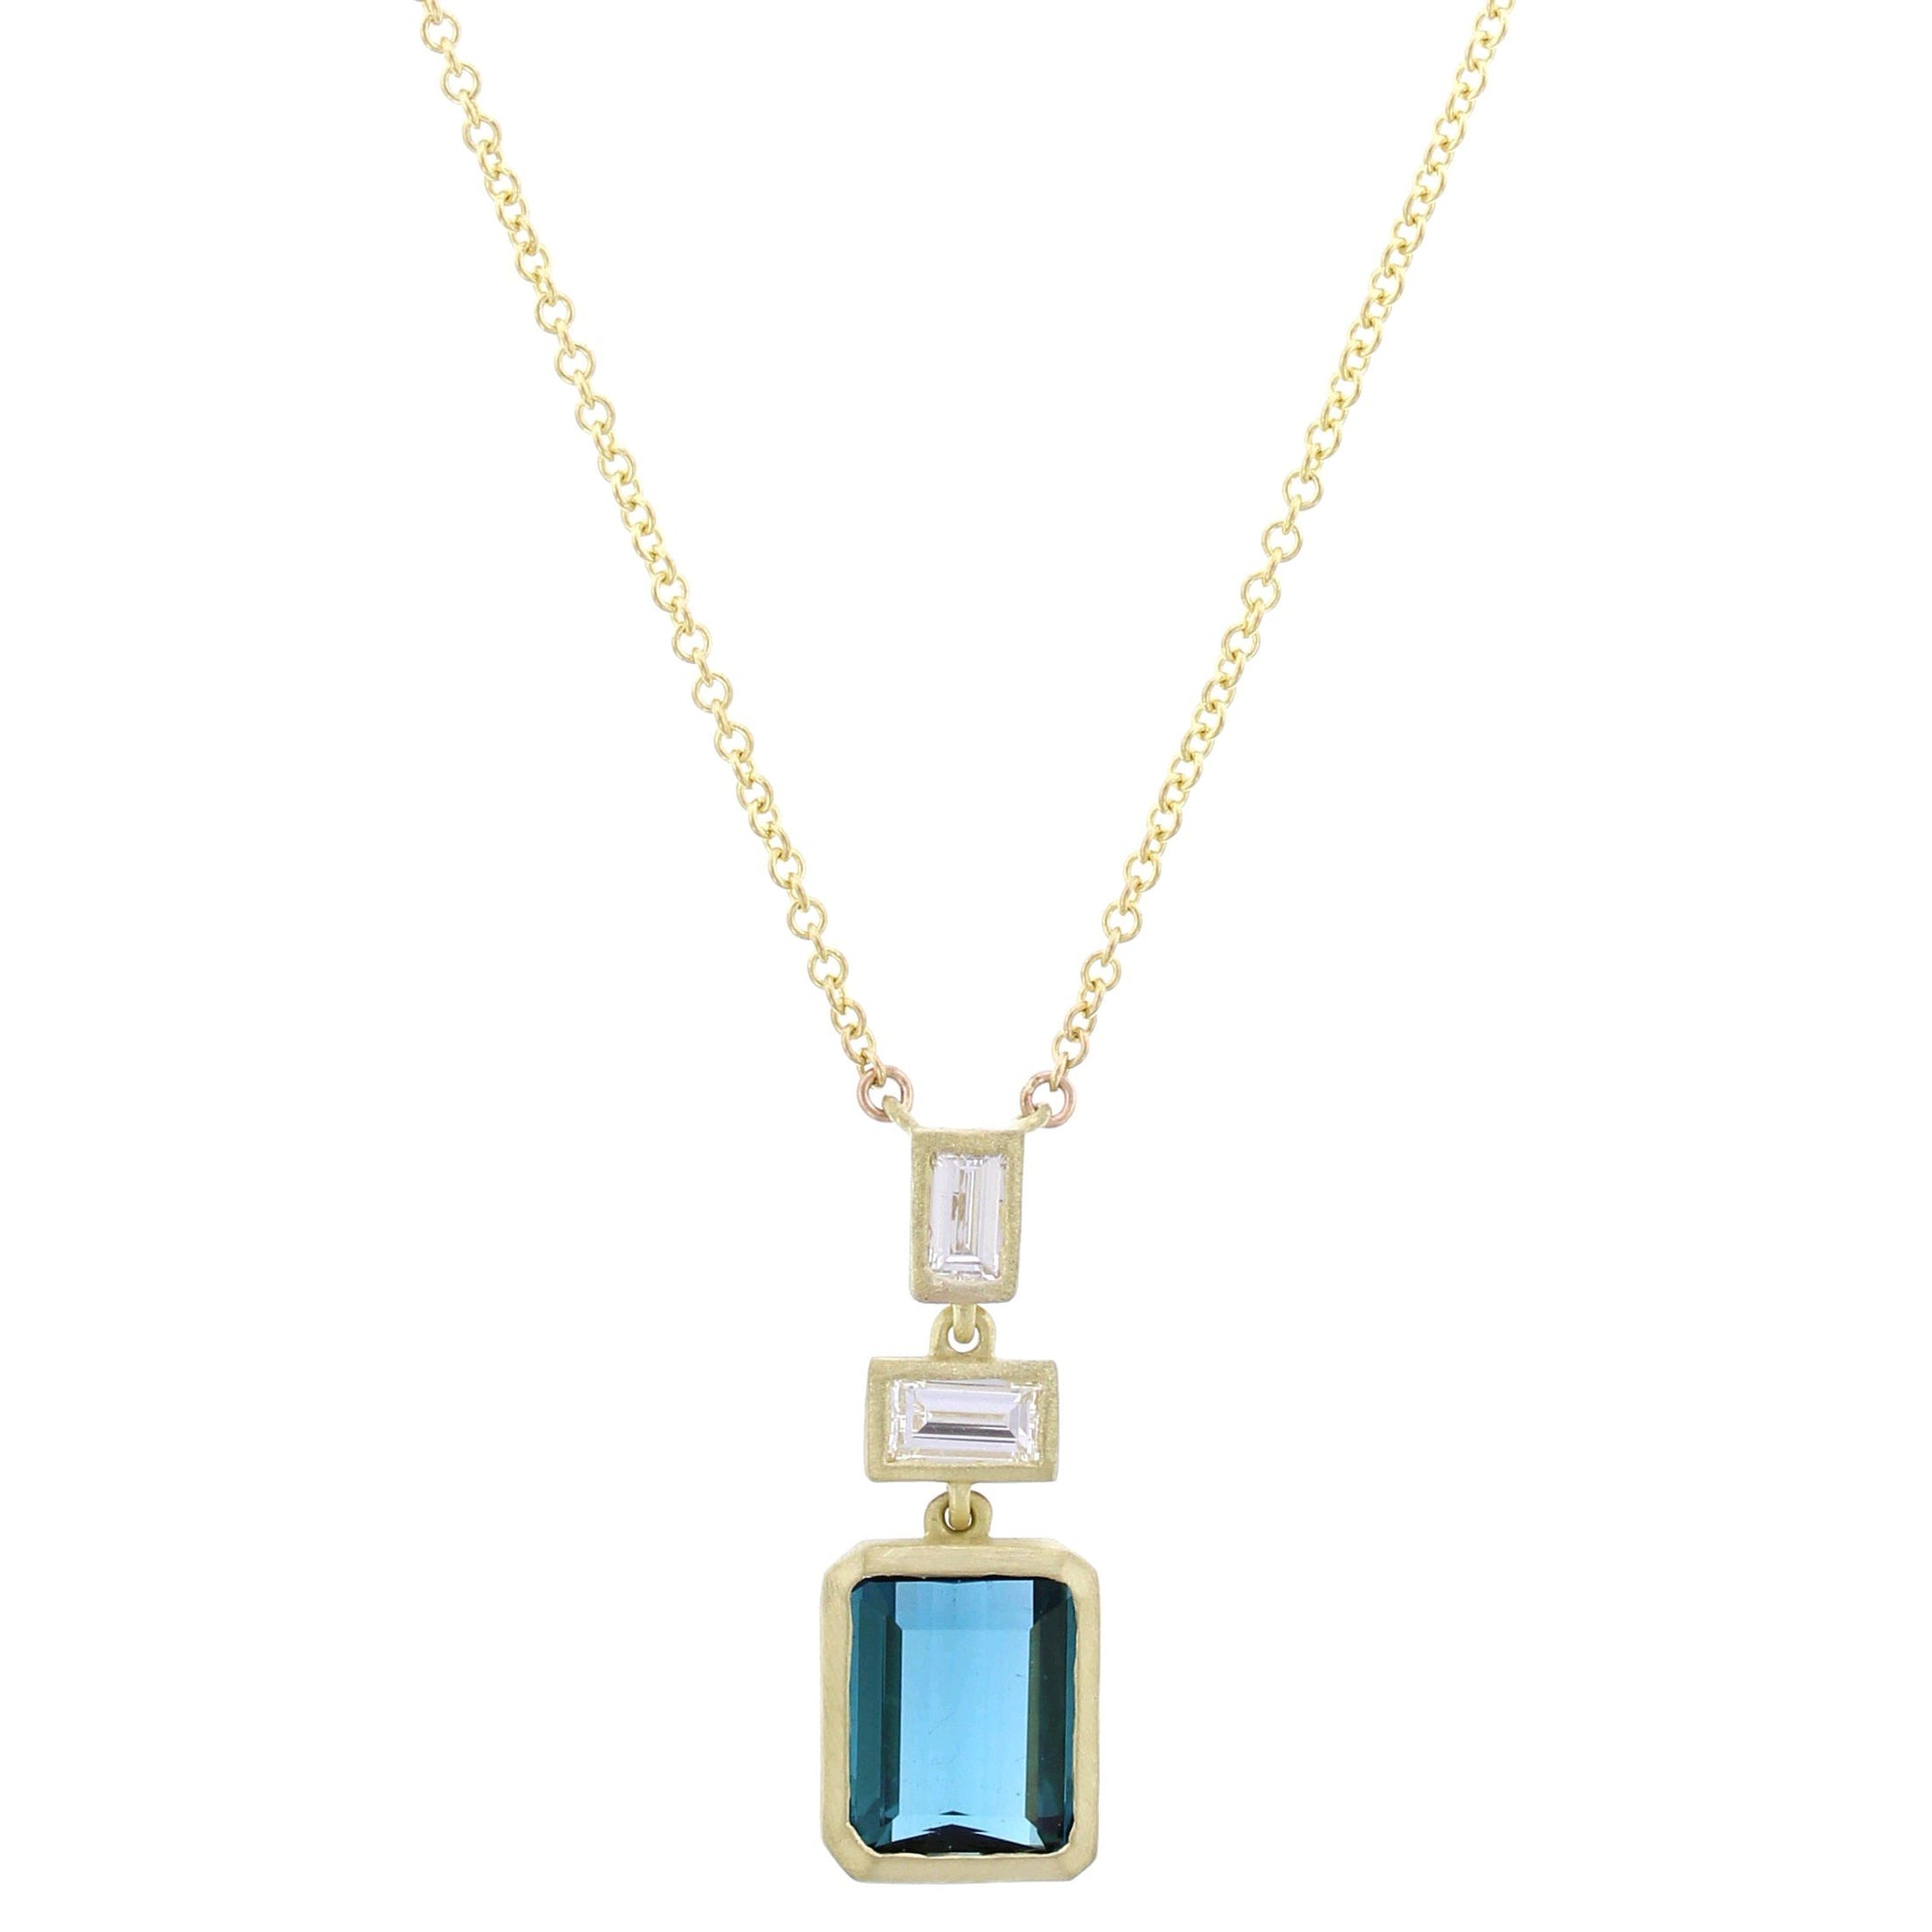 18K Yellow Gold Emerald Cut Indicolite Necklace